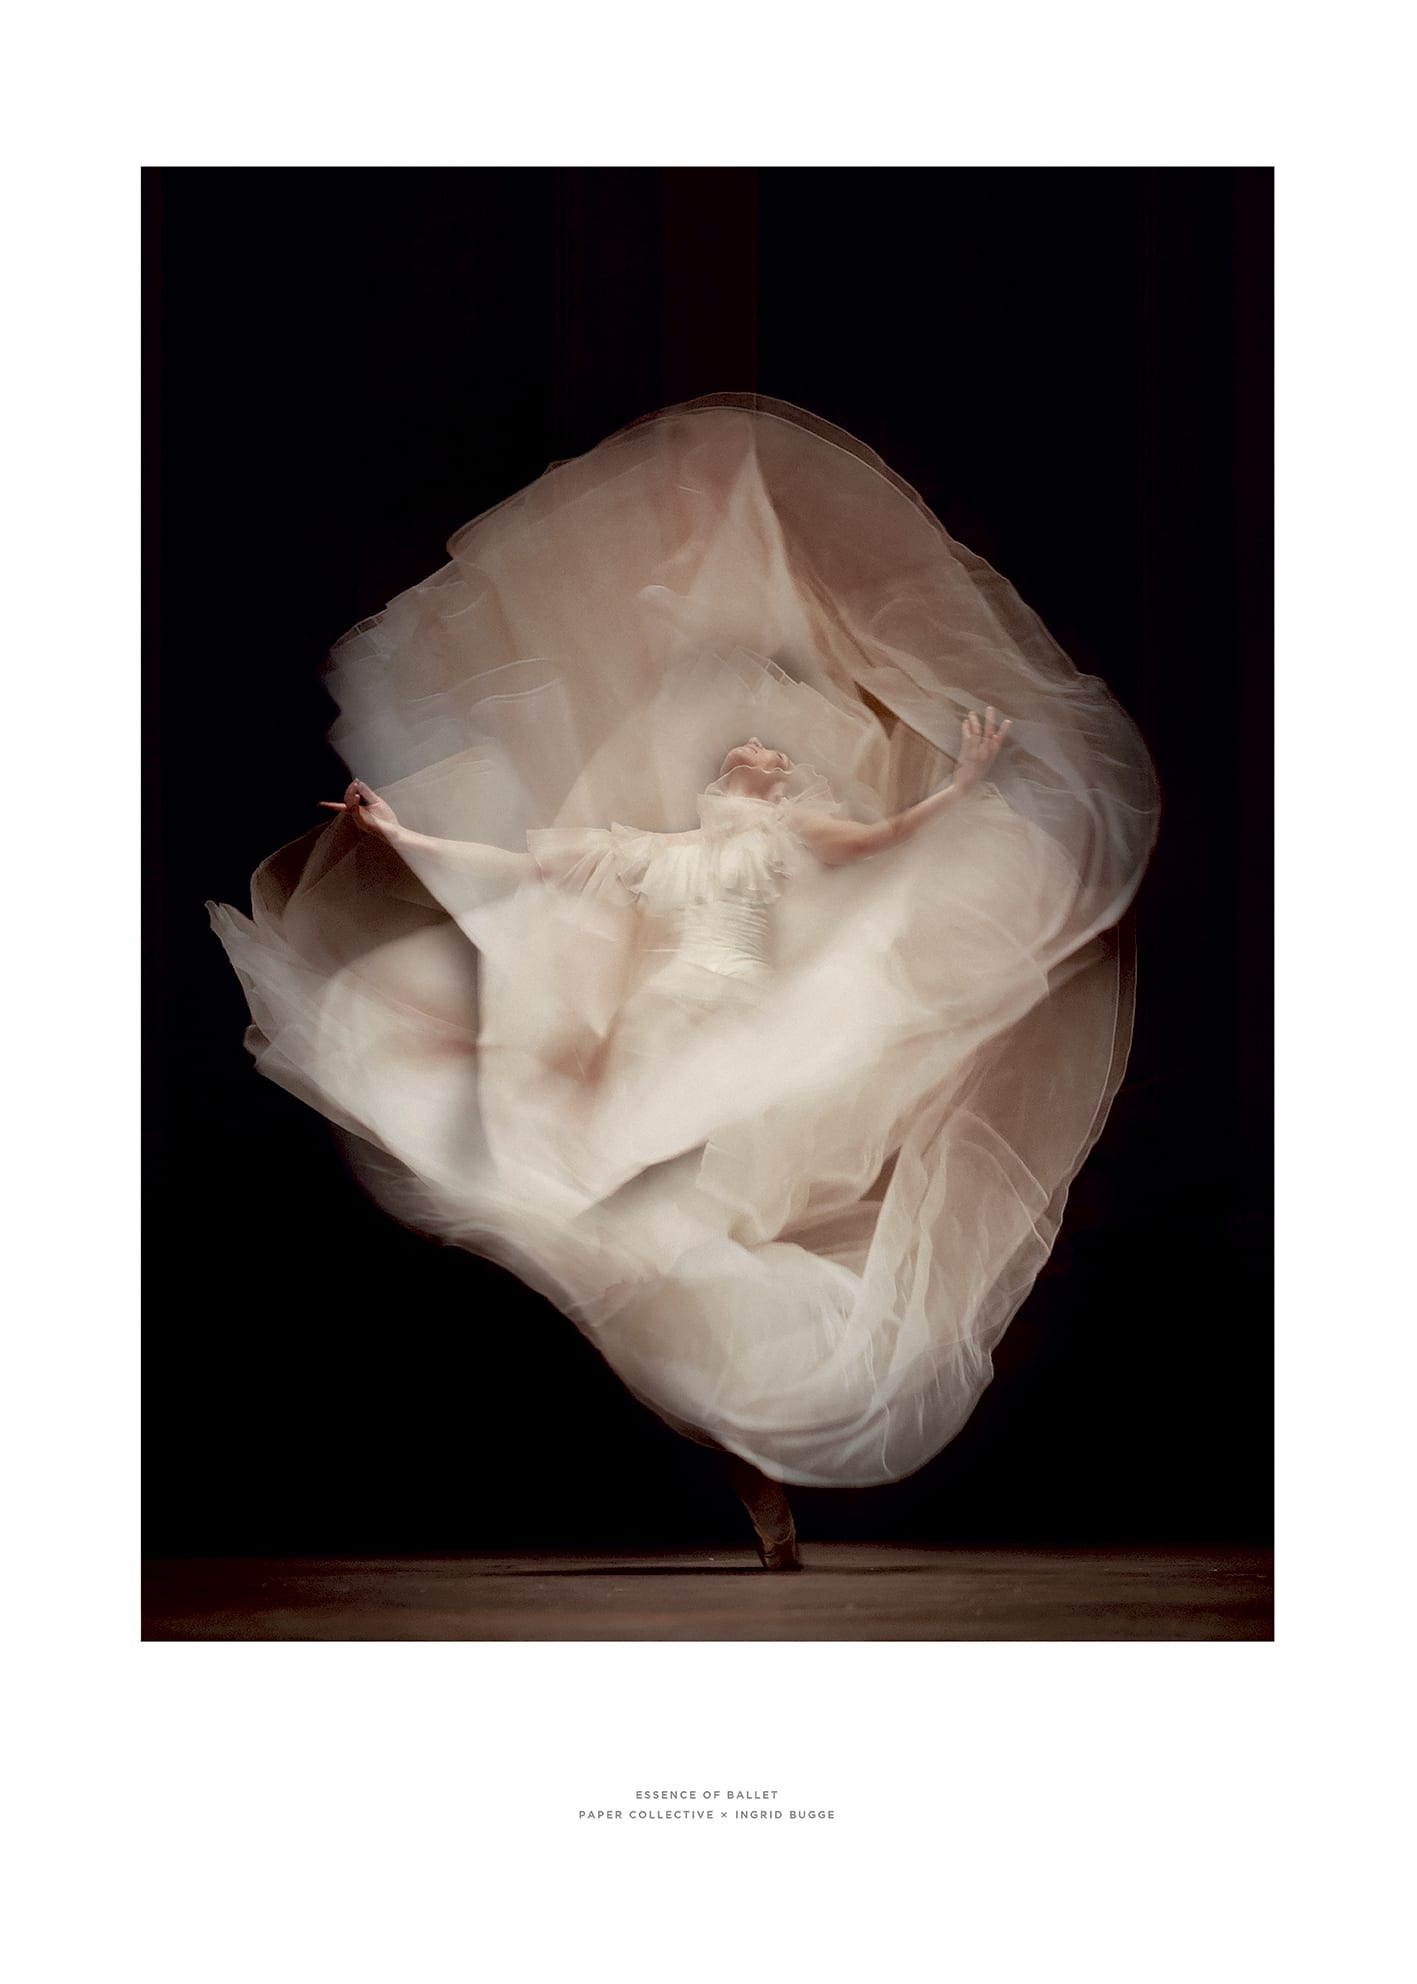 Paper Collective x Ingrid Bugge - Essence of ballet 01